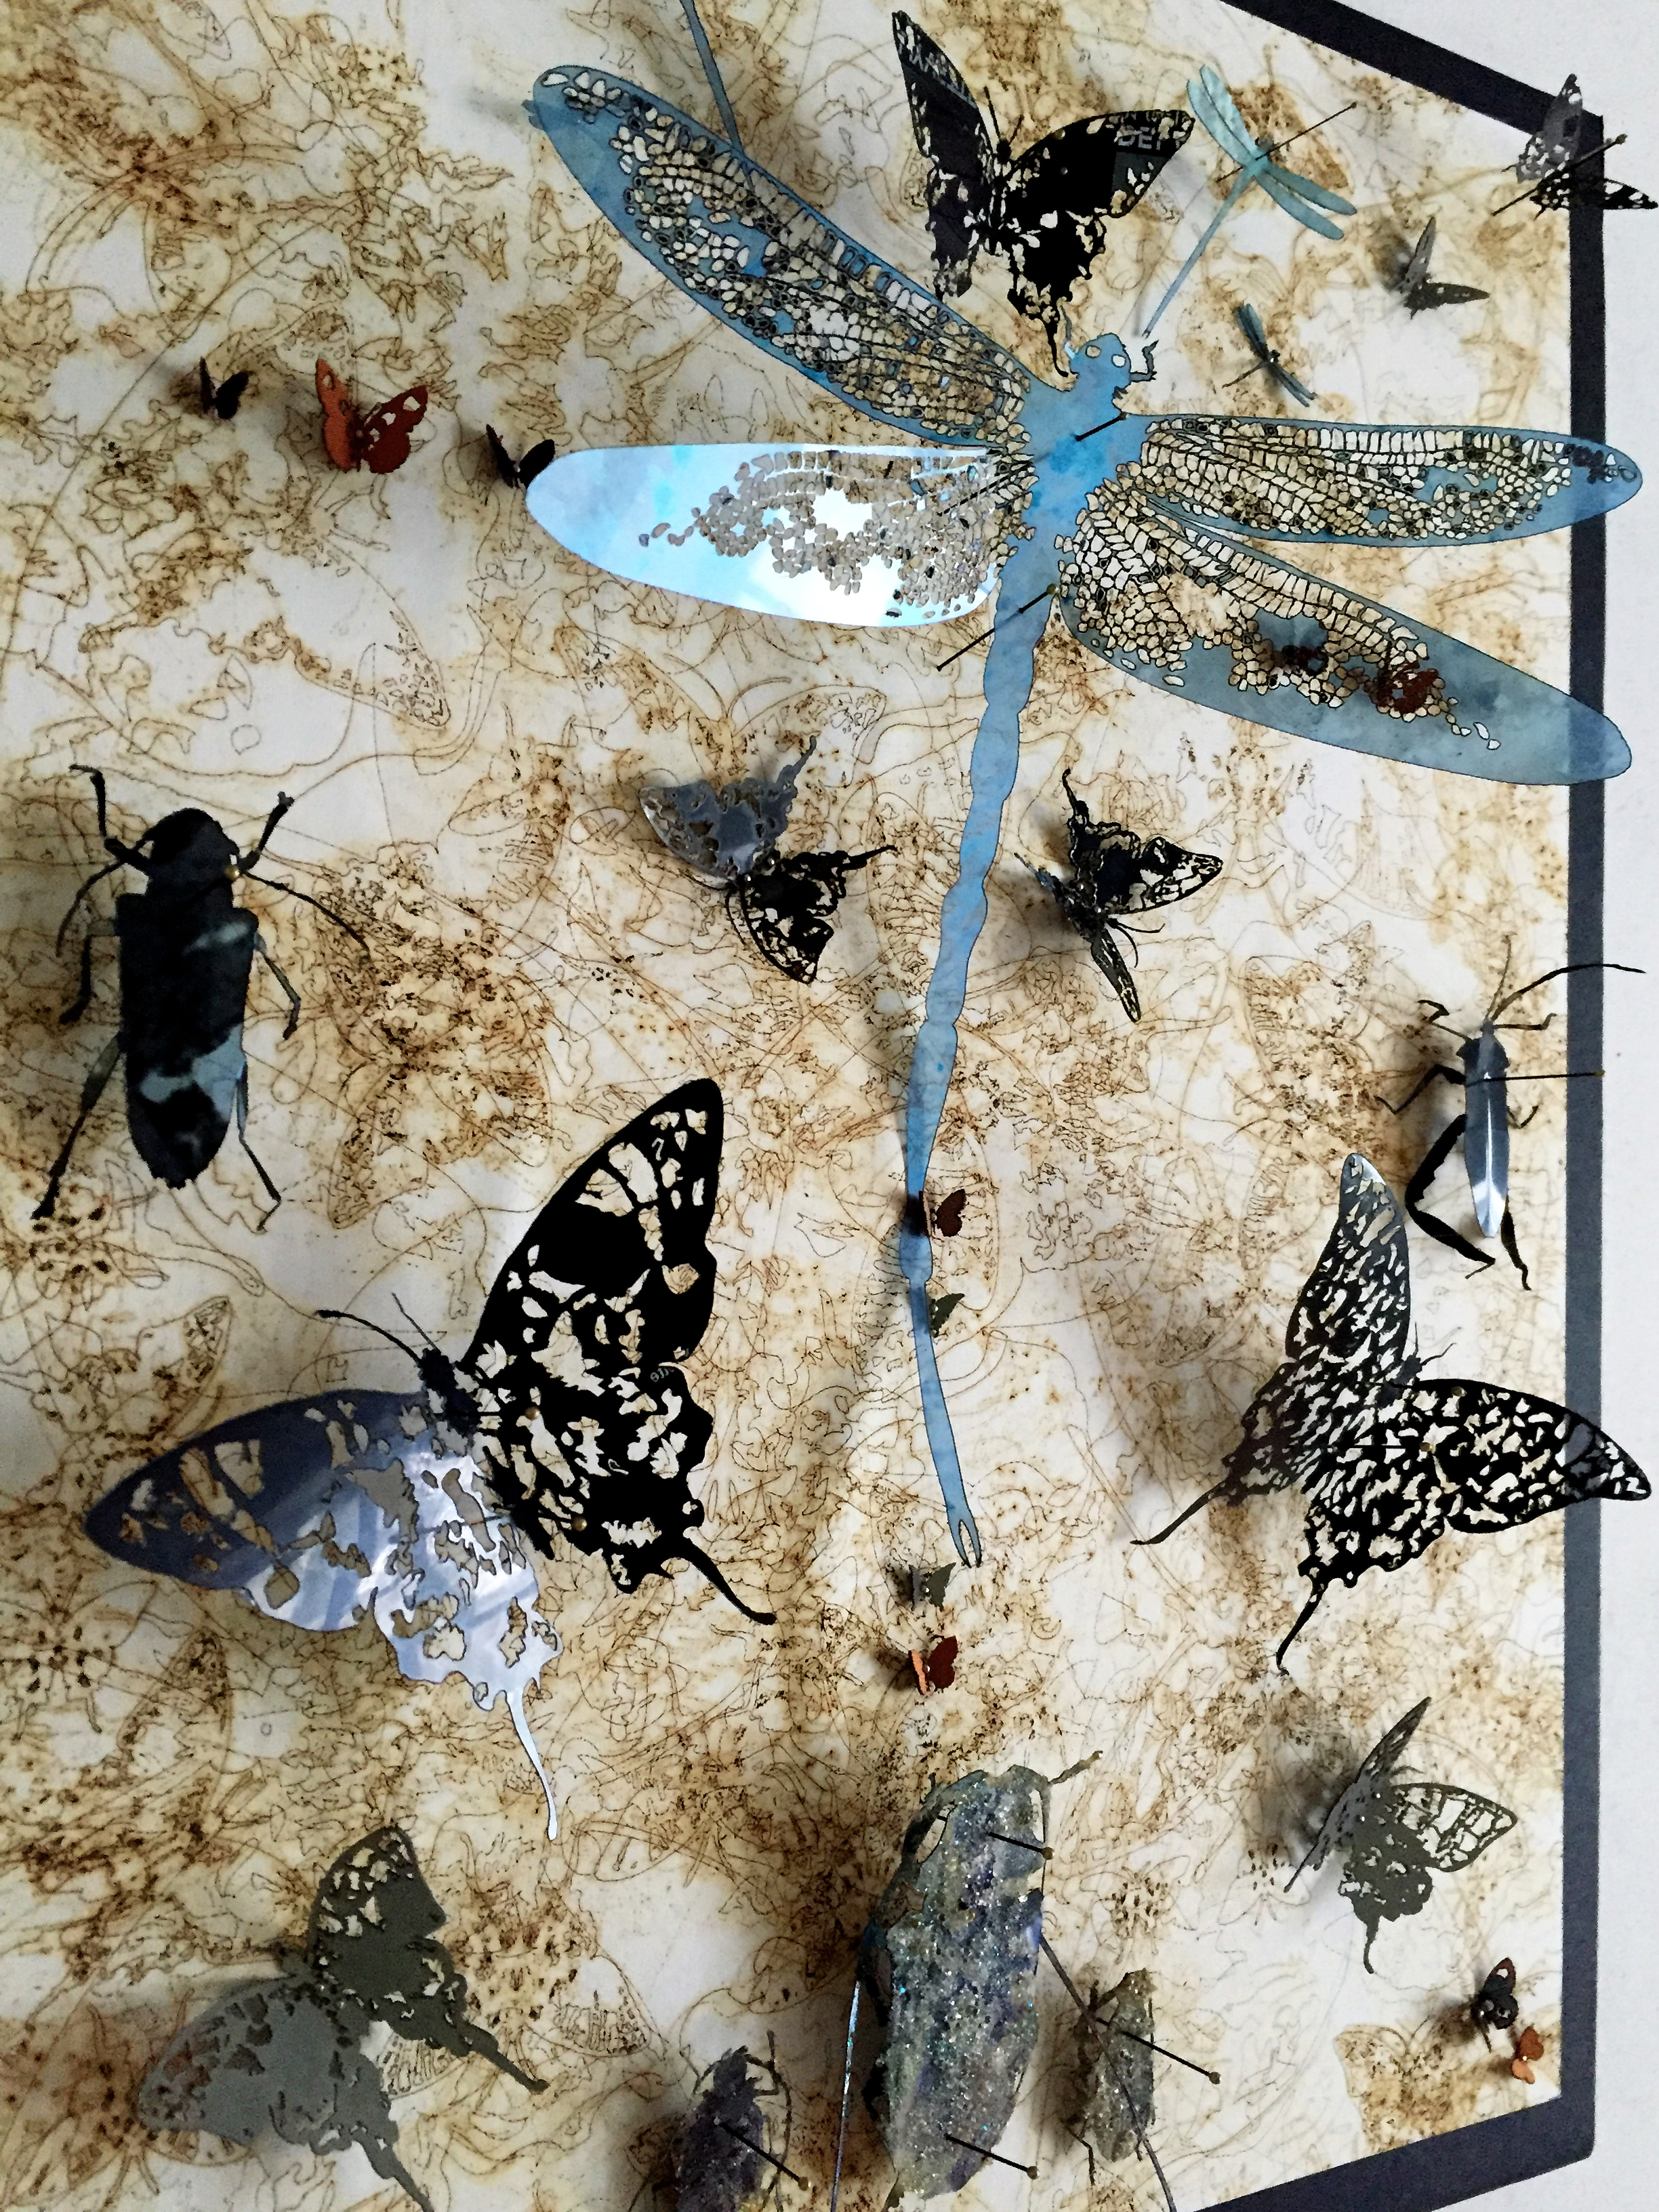 Amarger_artiste_2018_entomologiste-865-tableaux-detail-libellule.